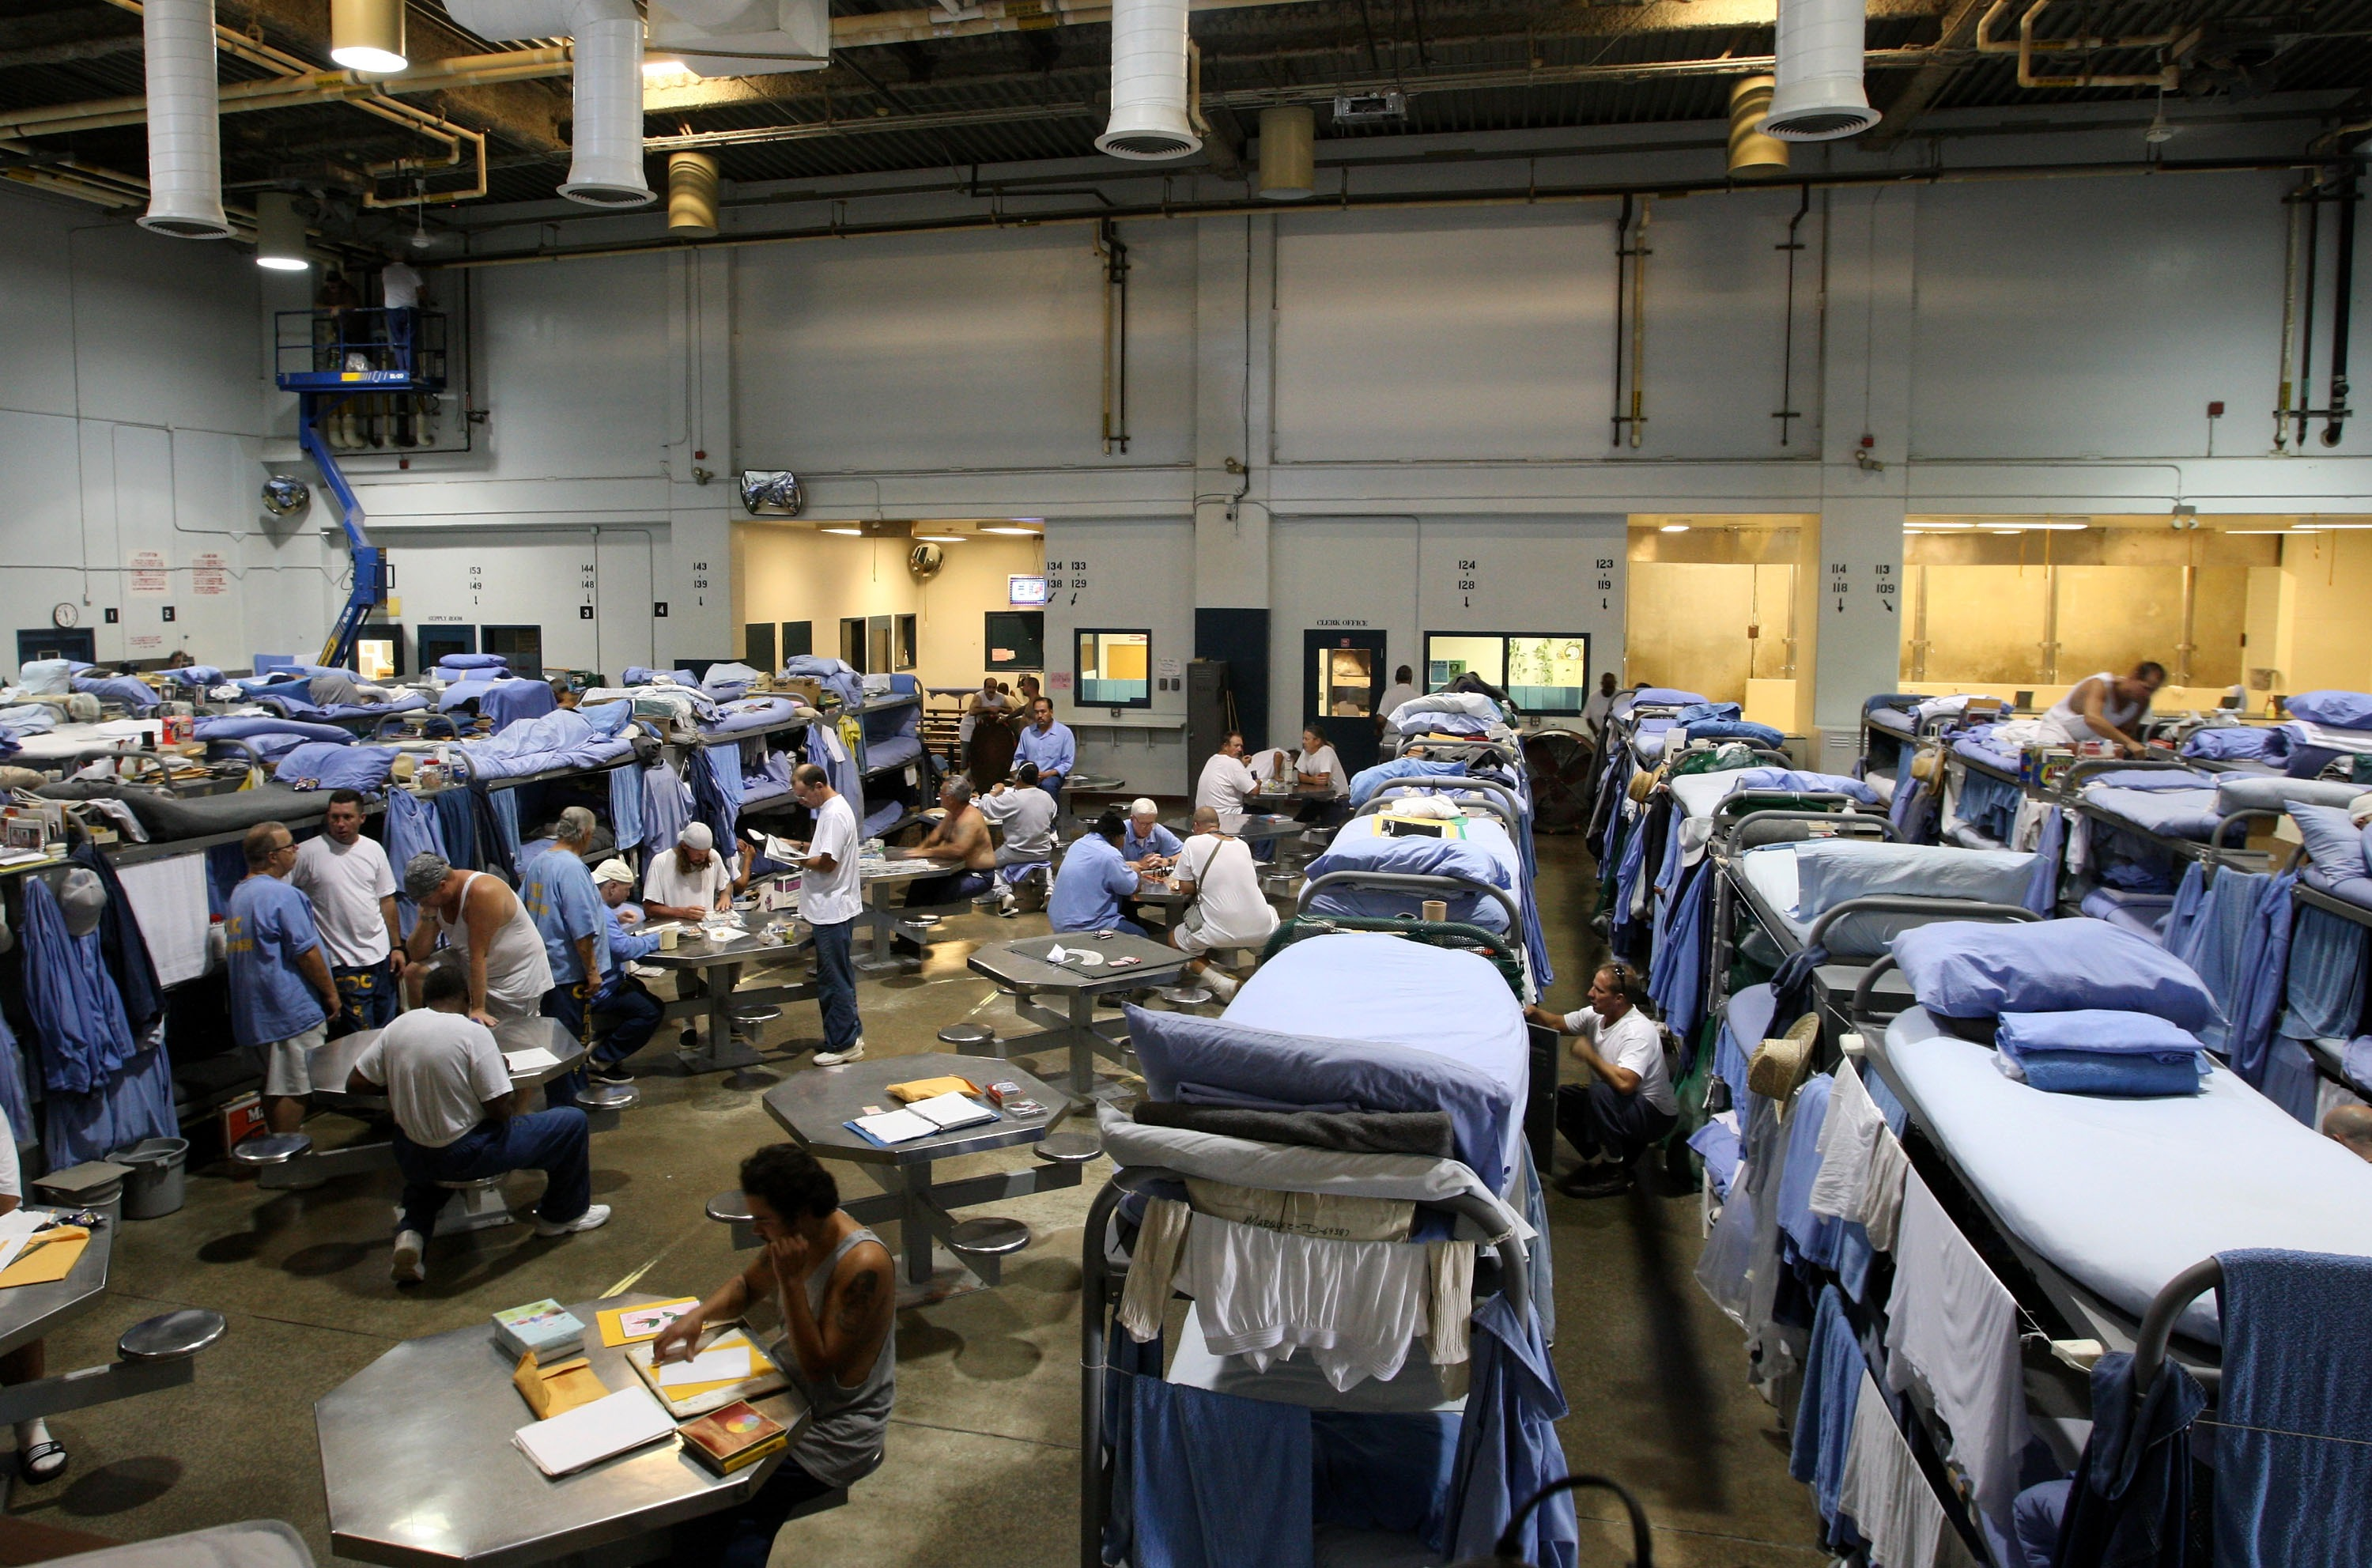 The Mule Creek State Prison has had to modify several facilities to make room for an increasing number of inmates. (Photo by Justin Sullivan/Getty Images)